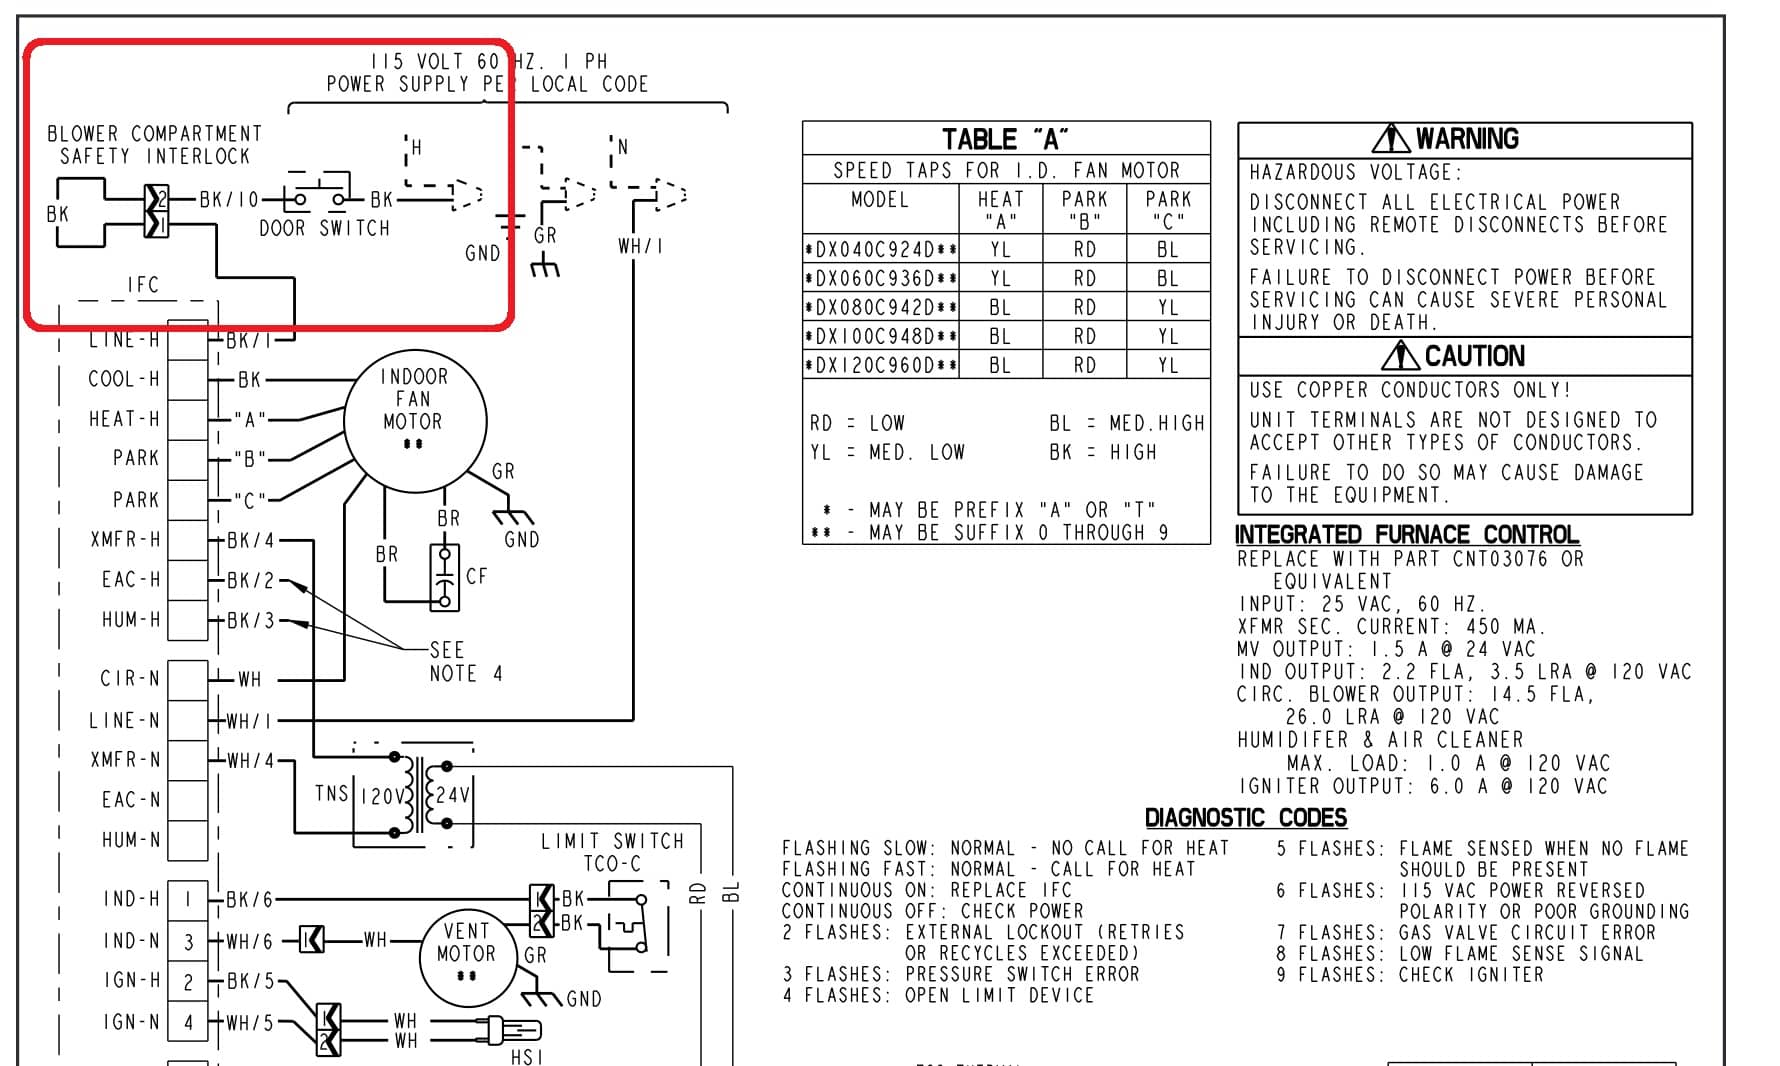 Trane_Furnace_Wiring_PARTIAL_023 trane xr80 wiring diagram trane xr80 parts manual \u2022 wiring trane xl16i wiring diagram at cos-gaming.co